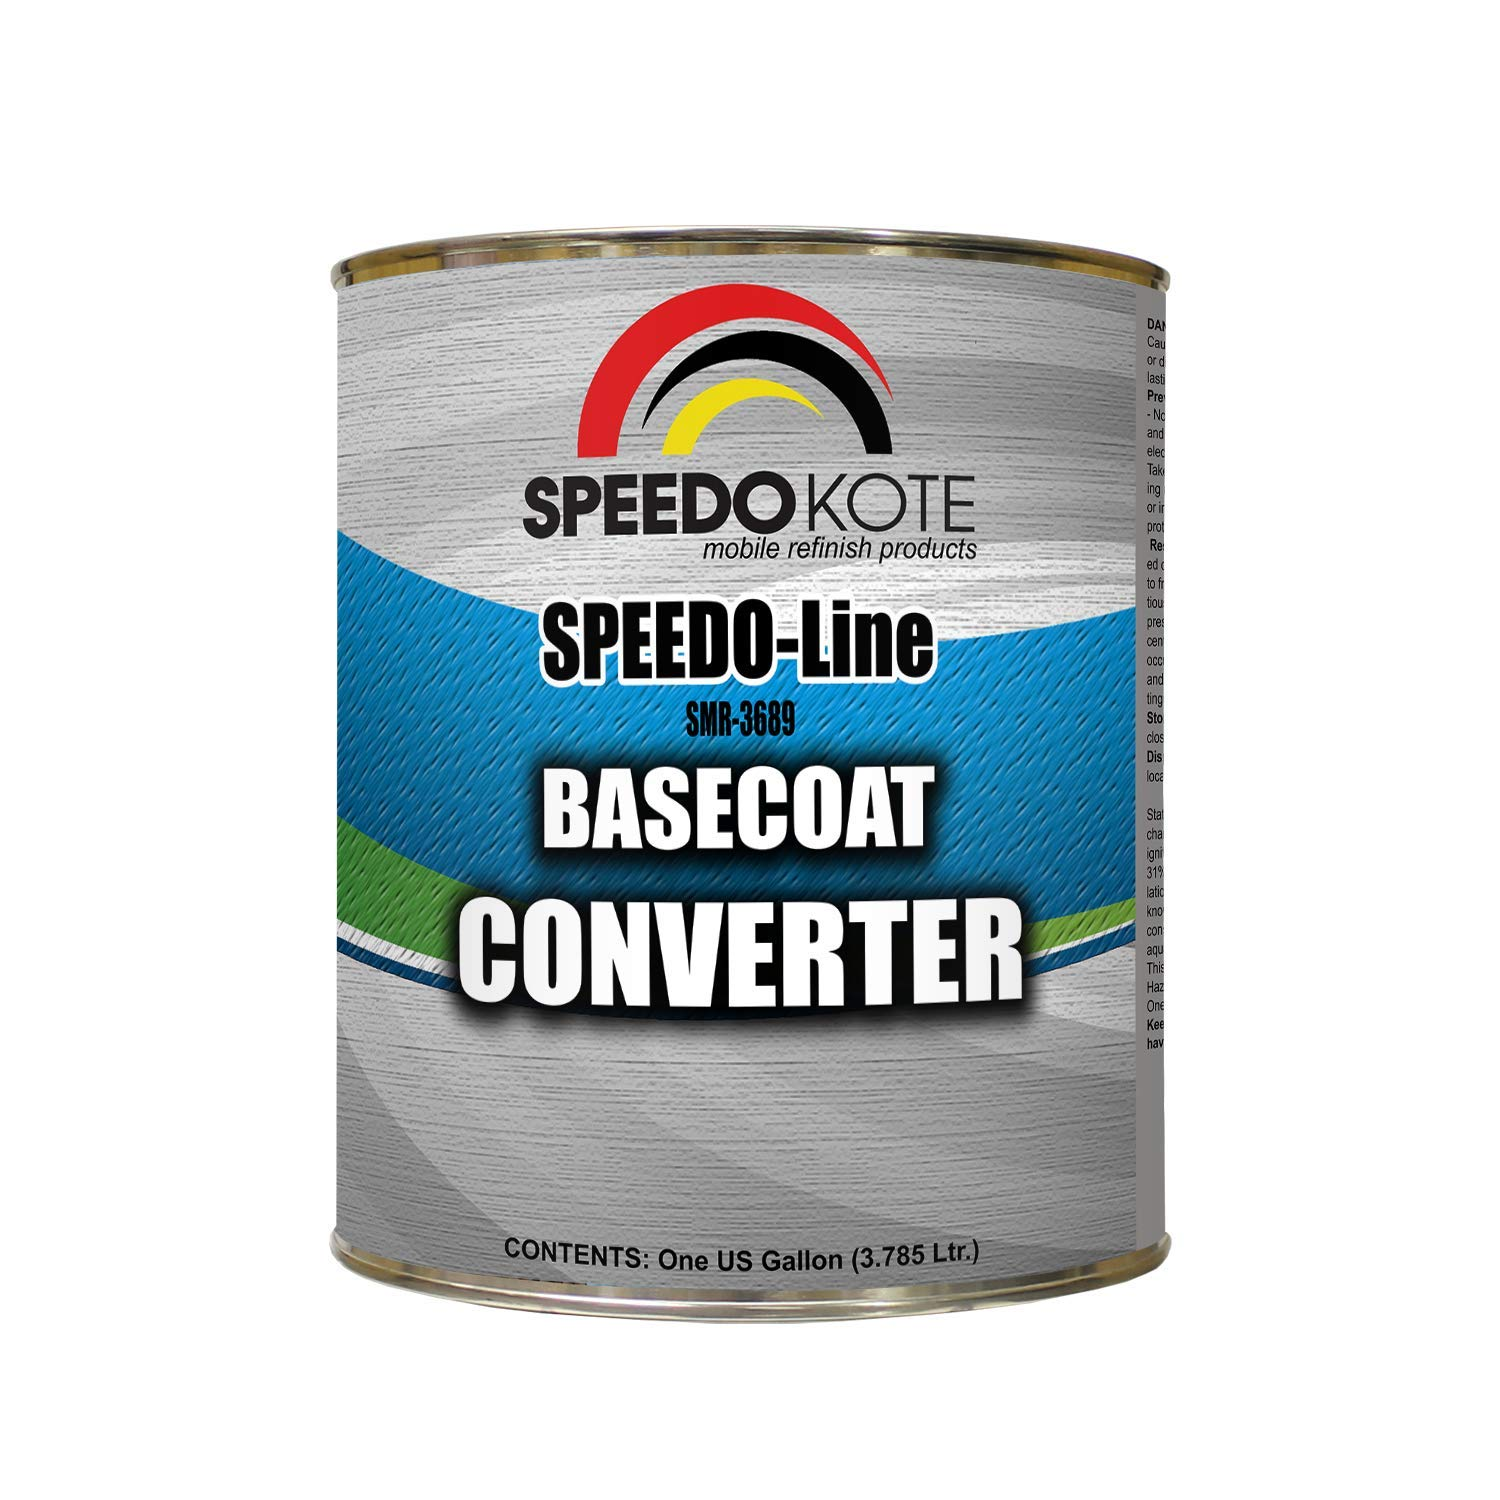 Speedokote Basecoat Converter for automotive base coat, One Gallon SMR-3689 by Speedokote